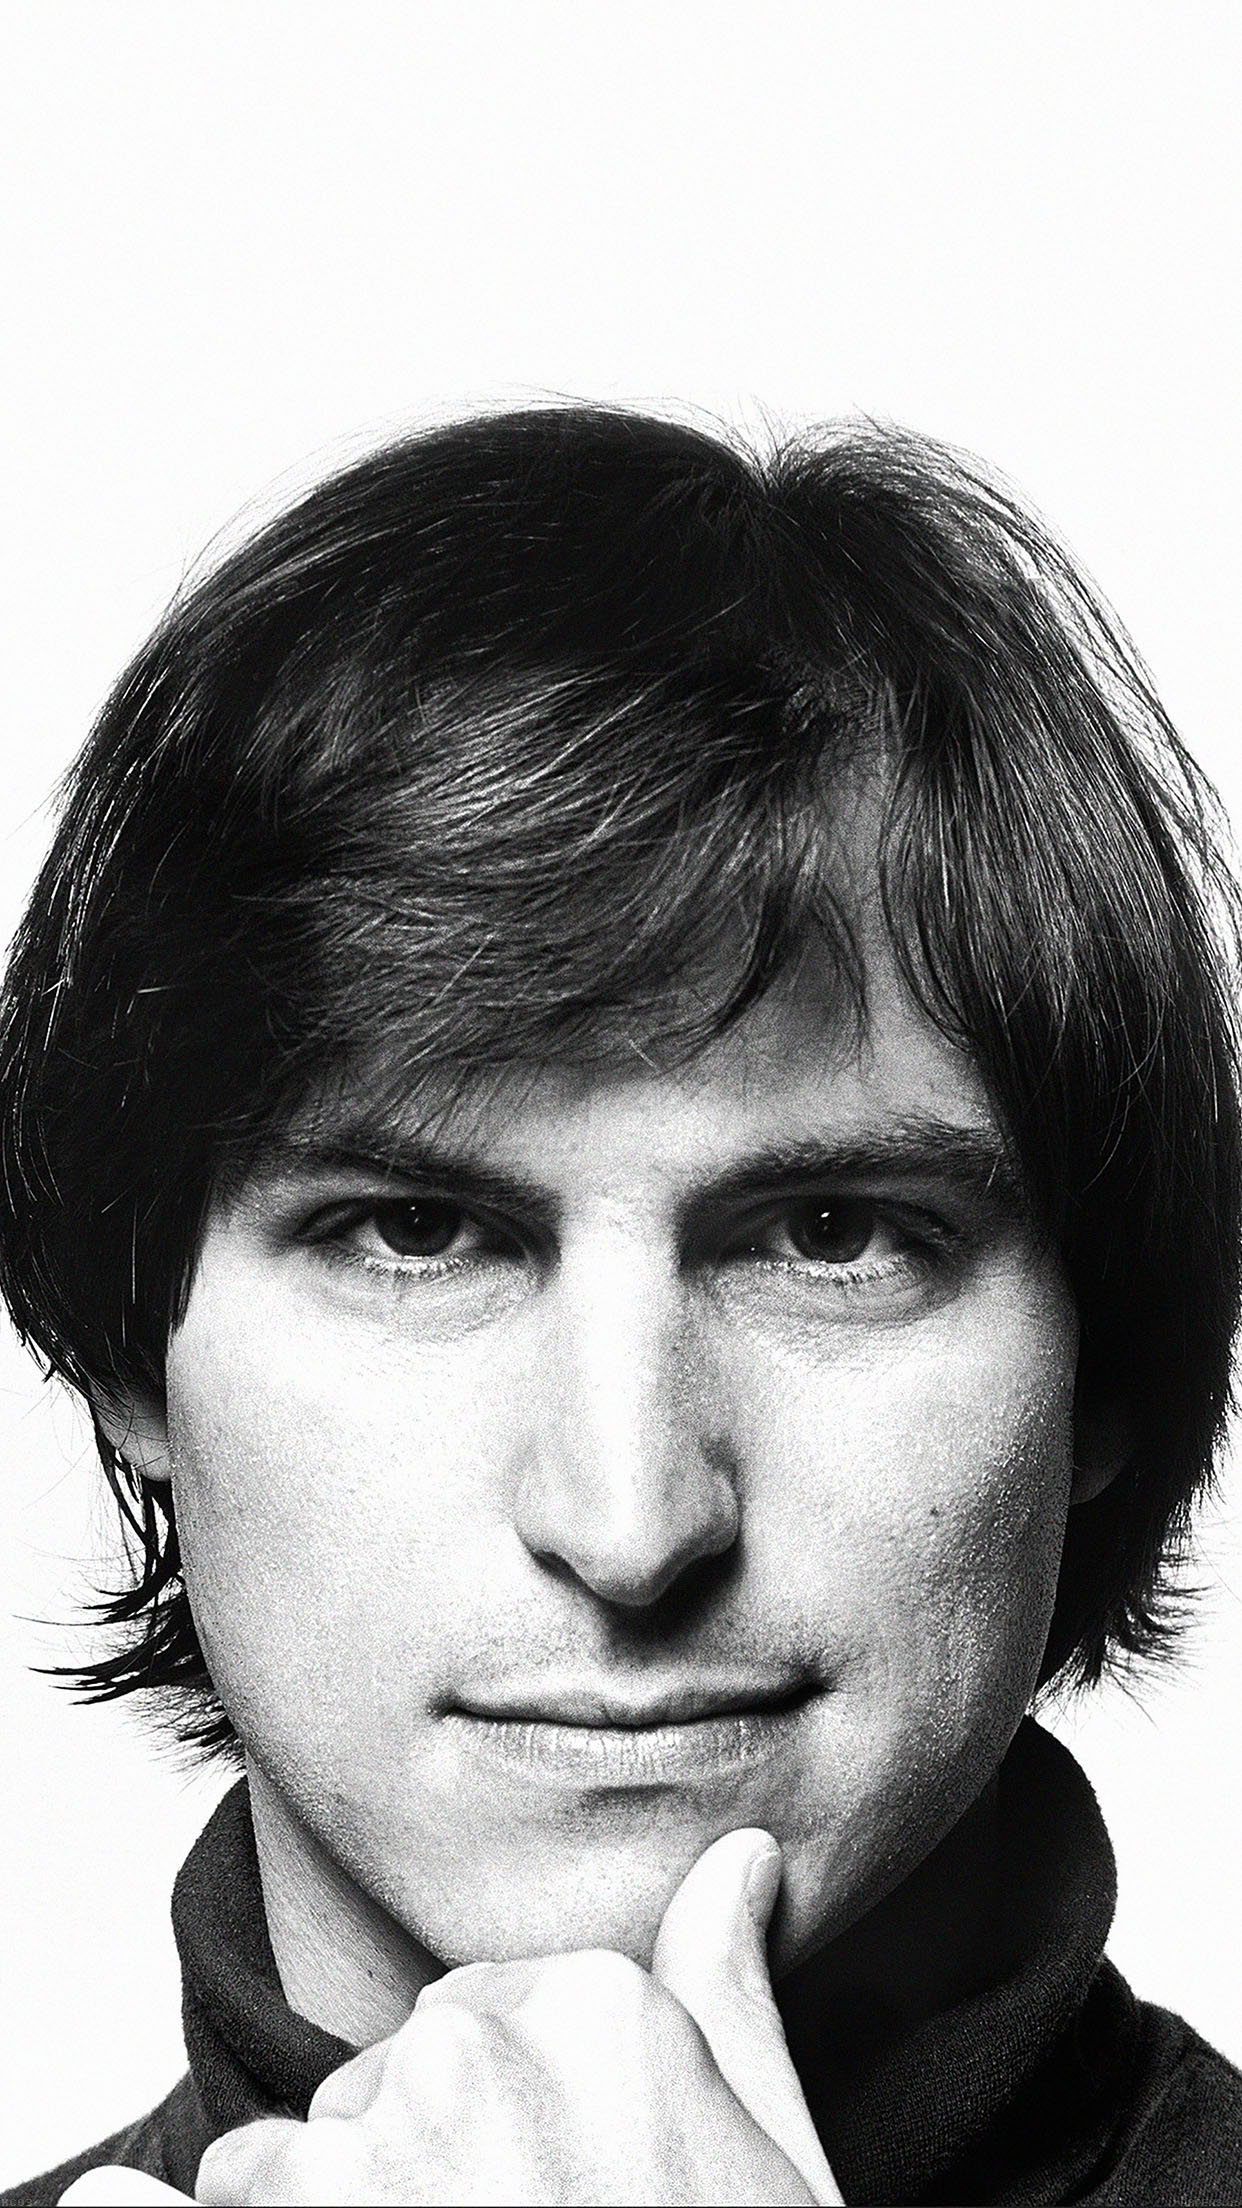 Steve Jobs Iphone Wallpaper Hc03 Young Steve Jobs Face Papers Co